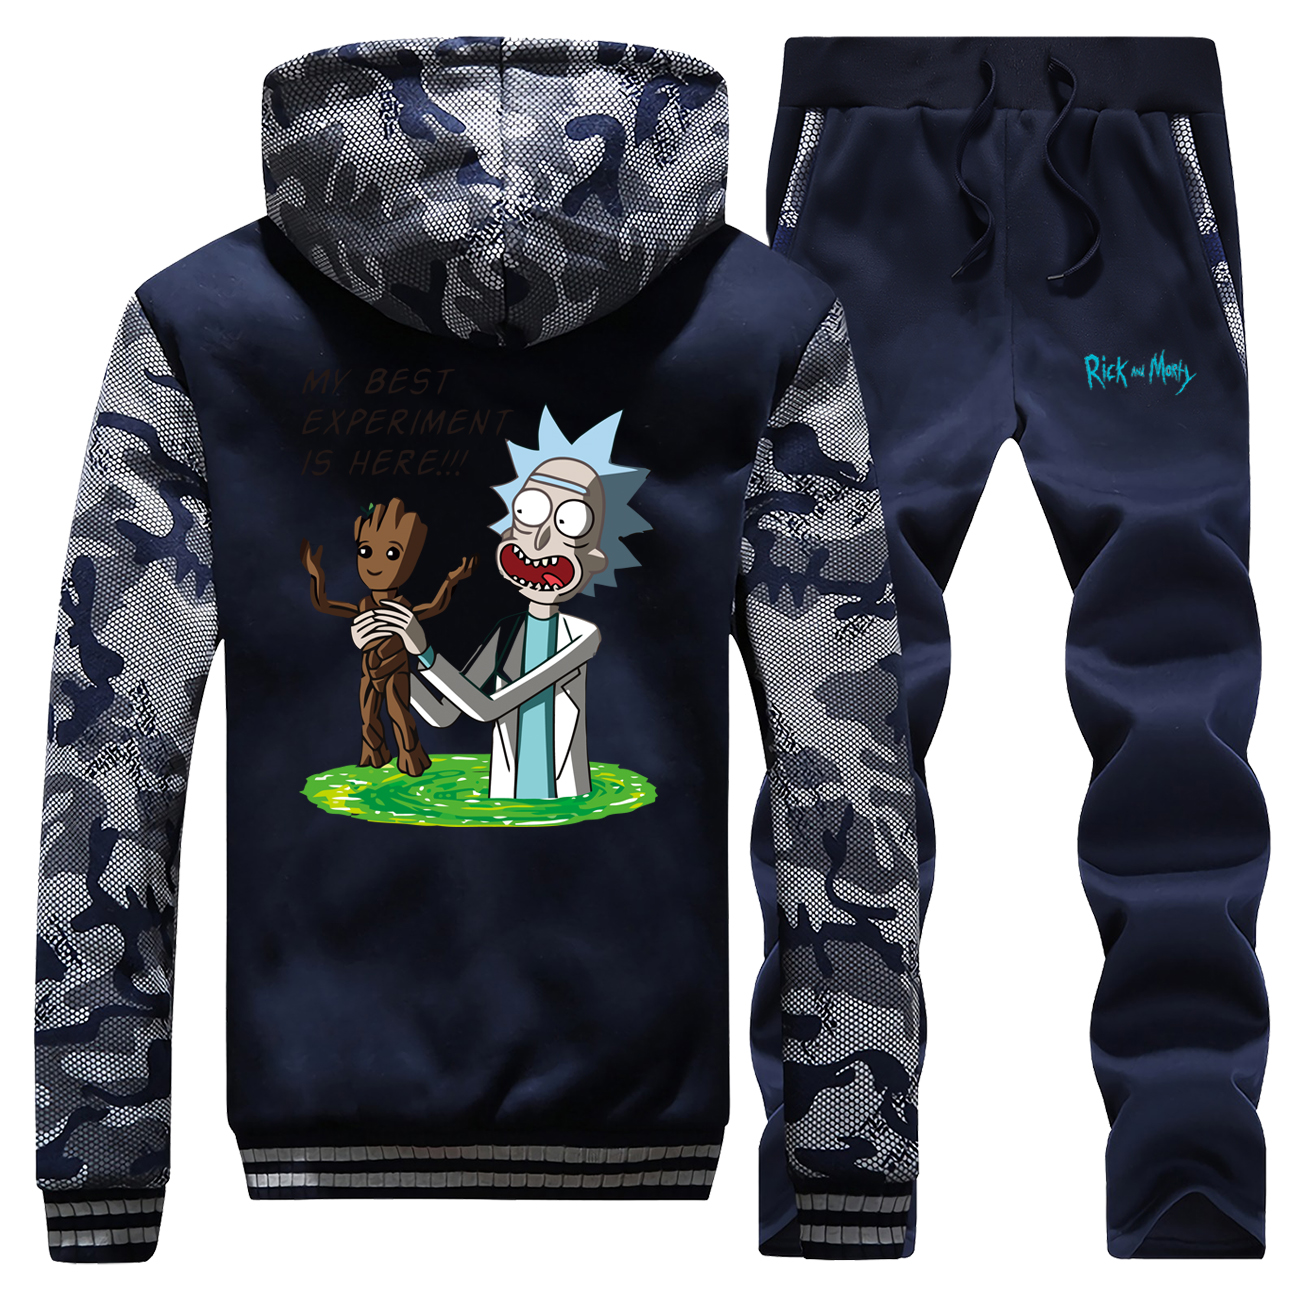 Wimter 2019 New Rick And Morty I'm Groot Cartoon Sweatshirt Men Camouflage Hip Hop Fashion Hooded Sportswear+Pants 2 Piece Set